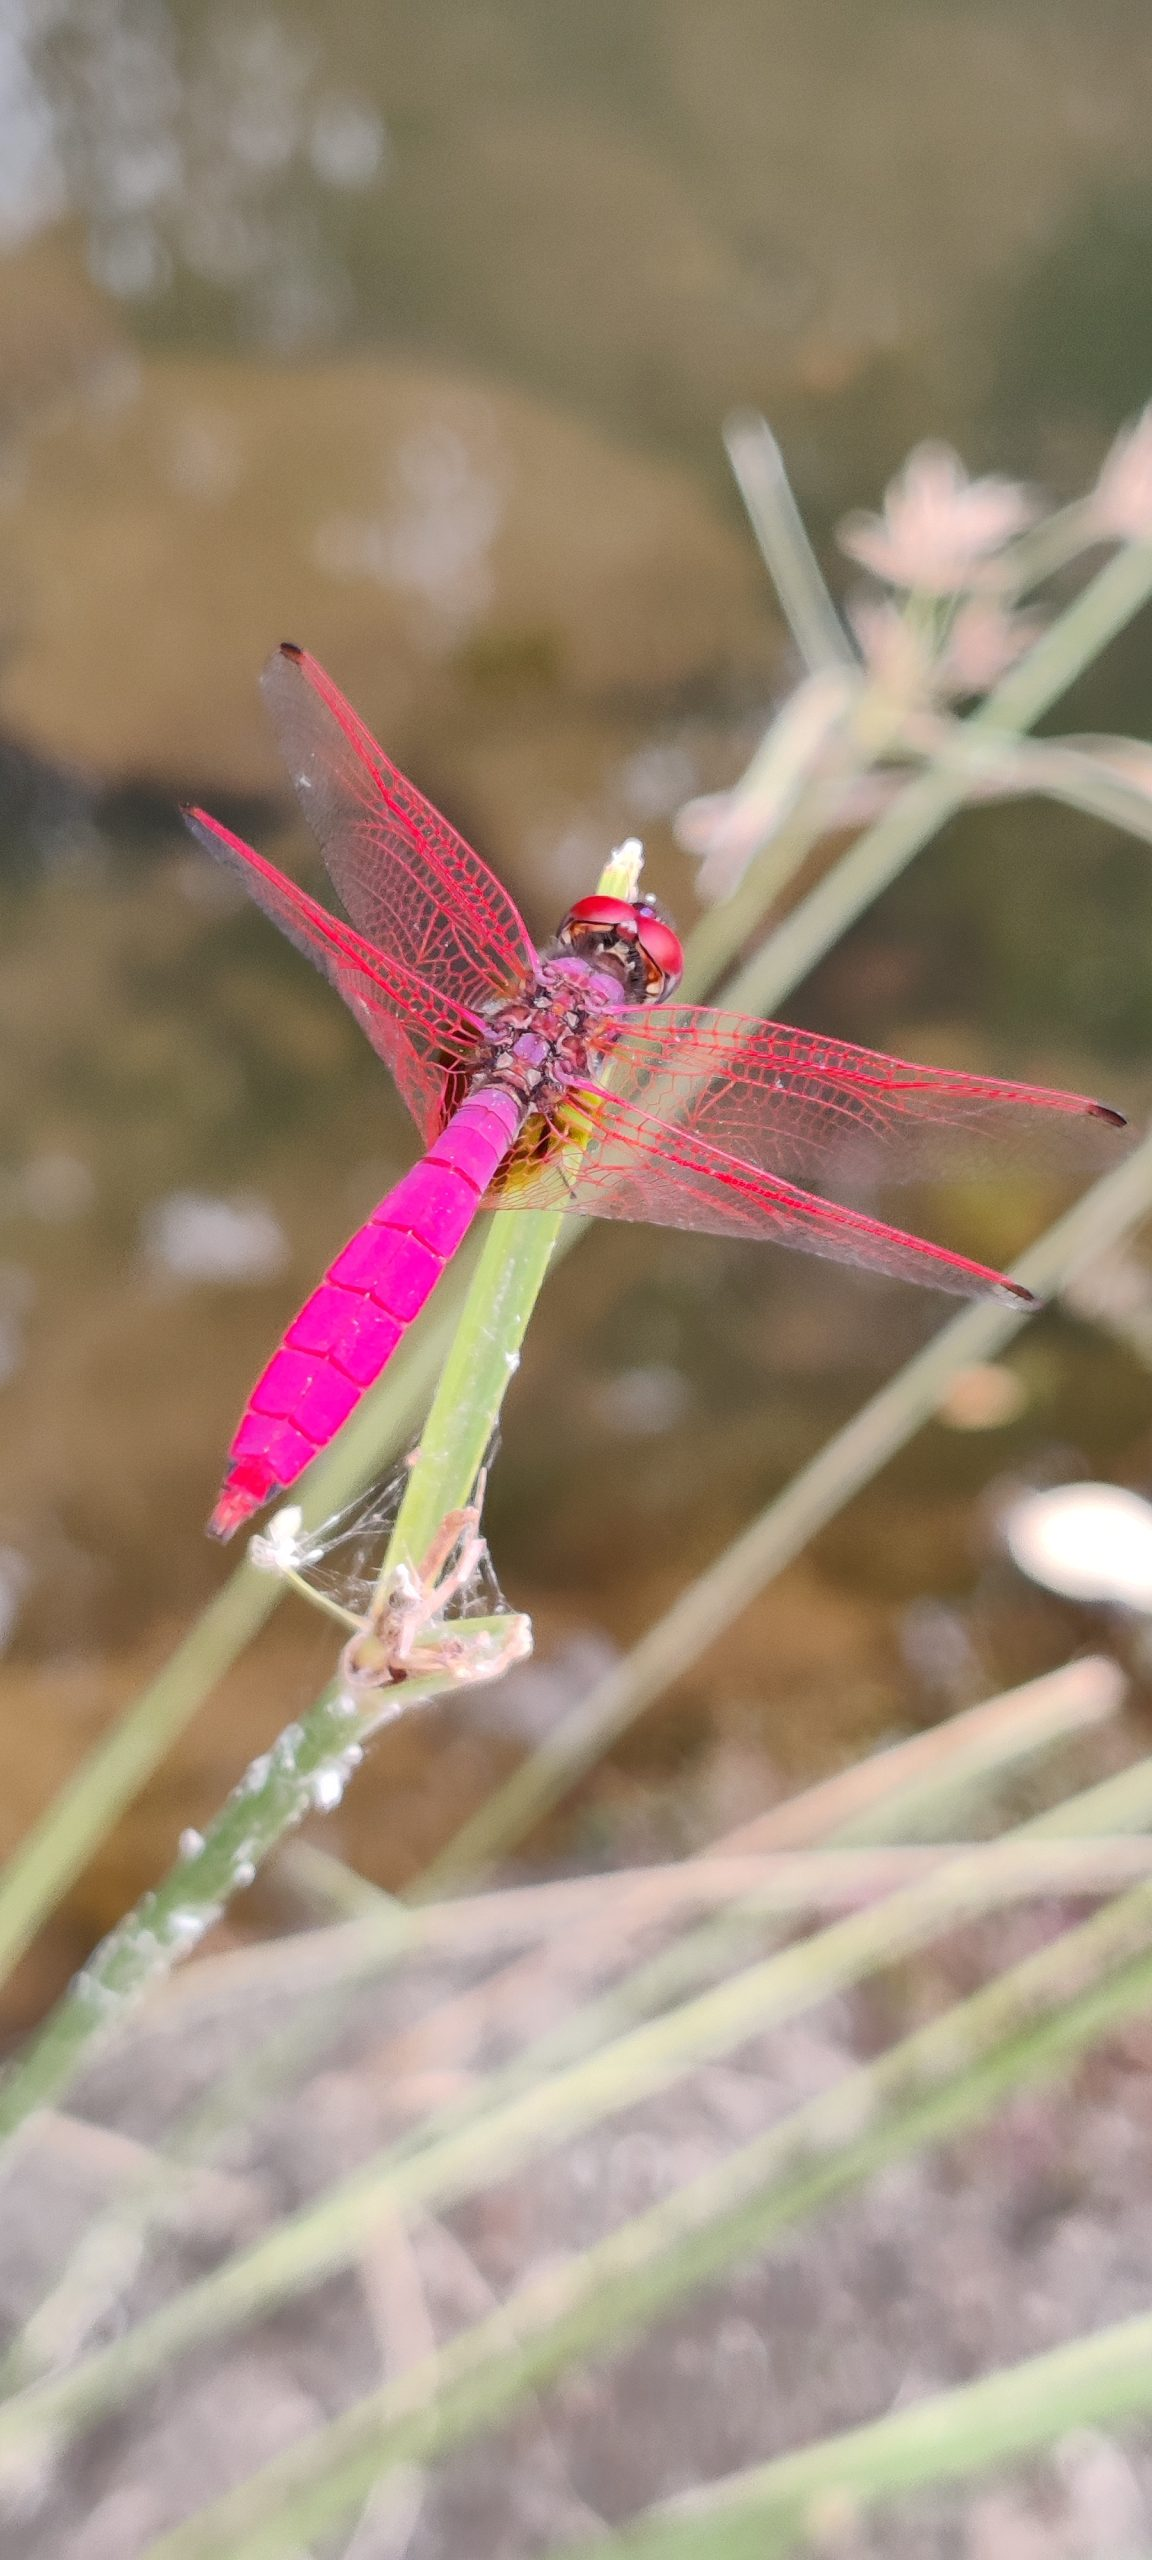 Colorful dragonfly on the plant stem